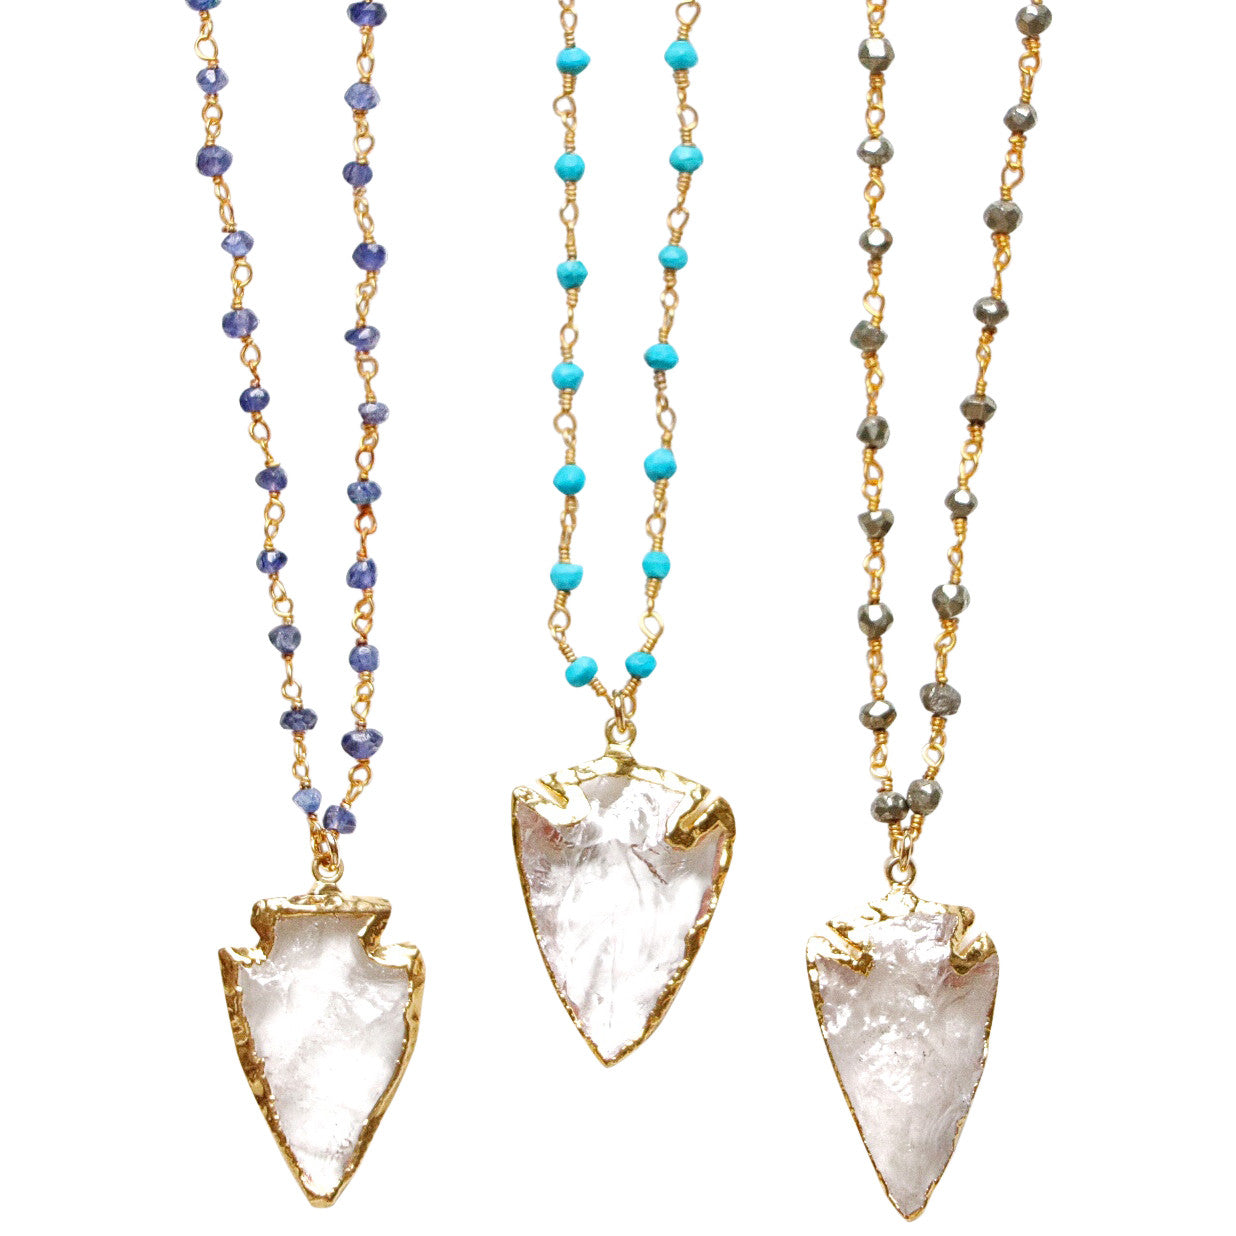 Southern made necklaces 24k Gold dipped Crystal Arrowhead on a 14k Gold Filled Wire-wrapped Blue Sapphire Chain